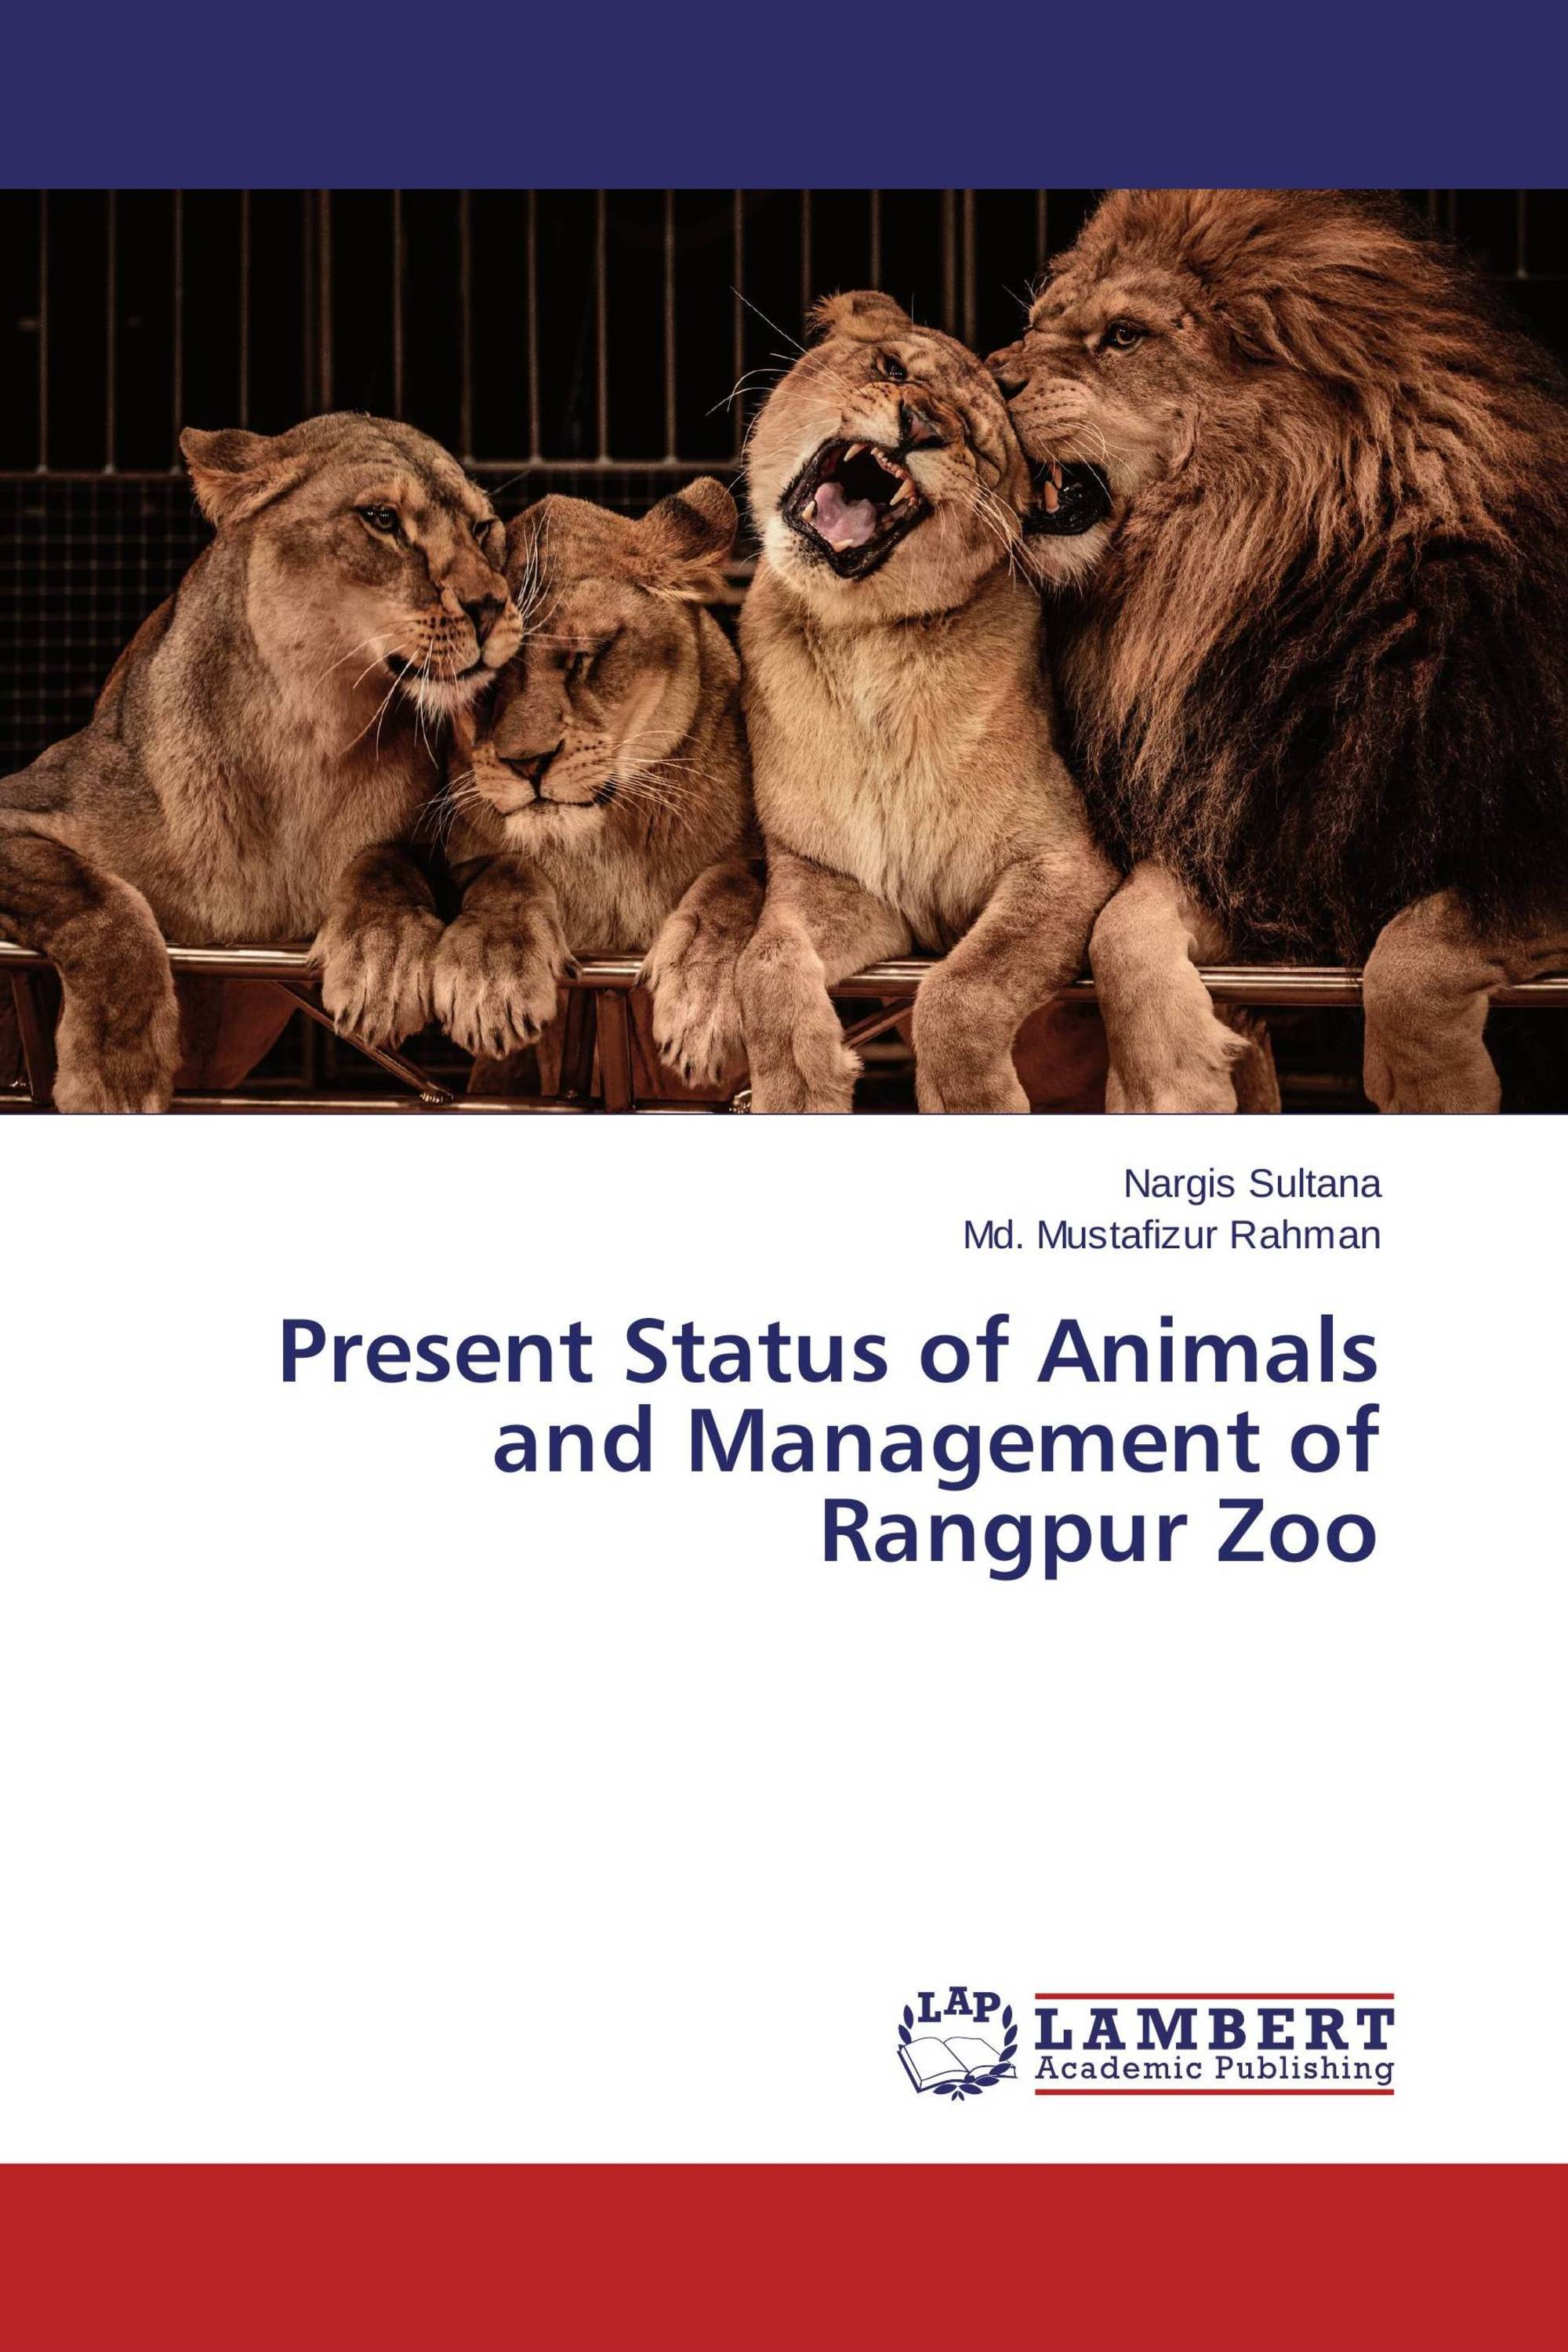 Present Status of Animals and Management of Rangpur Zoo